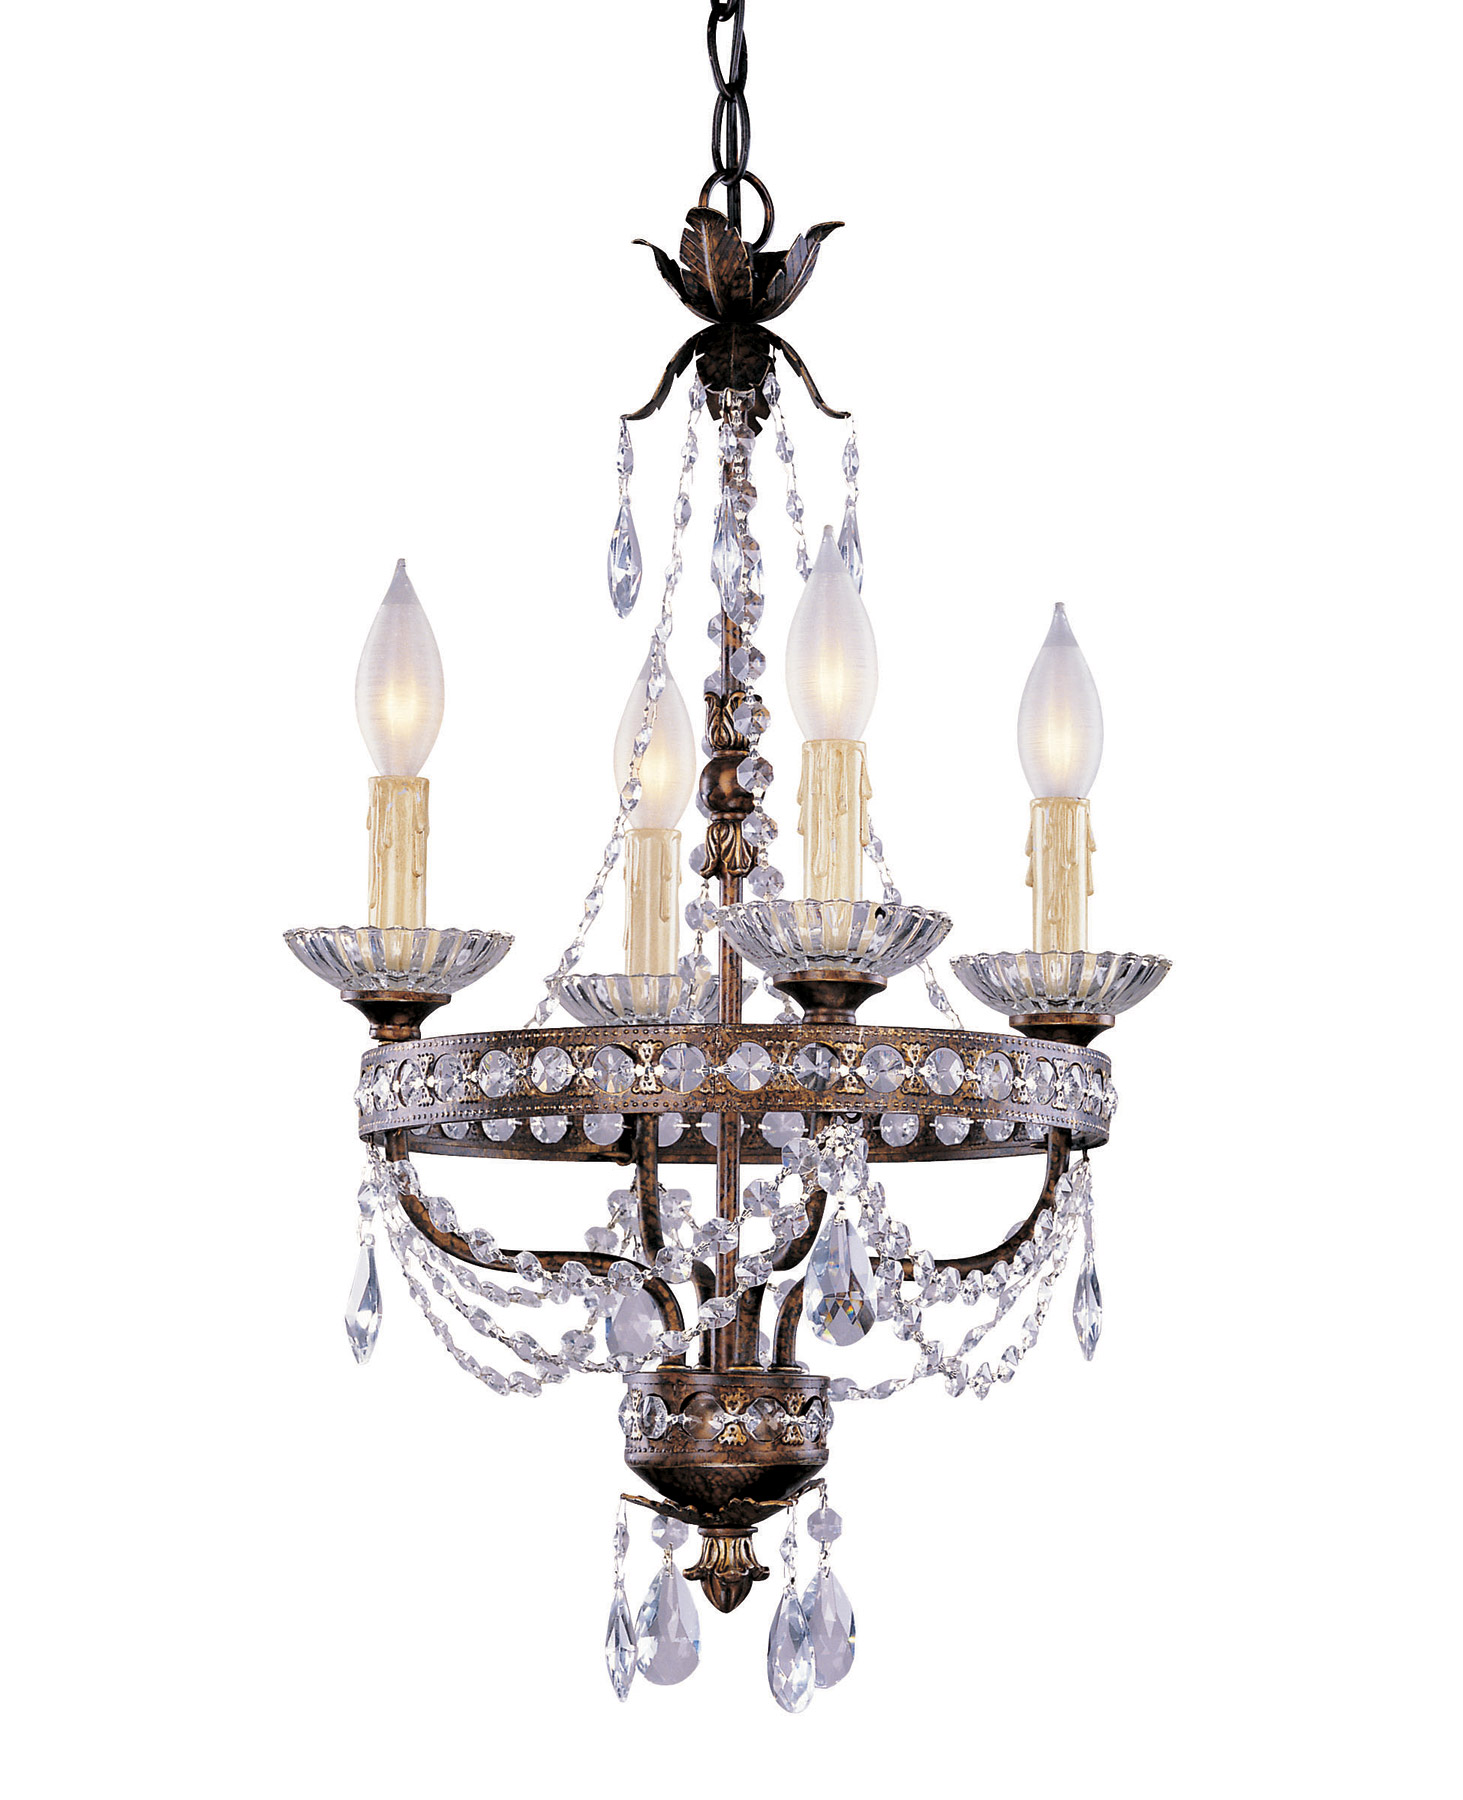 Savoy house 1 1043 4 8 crystal linda mini chandelier mozeypictures Gallery